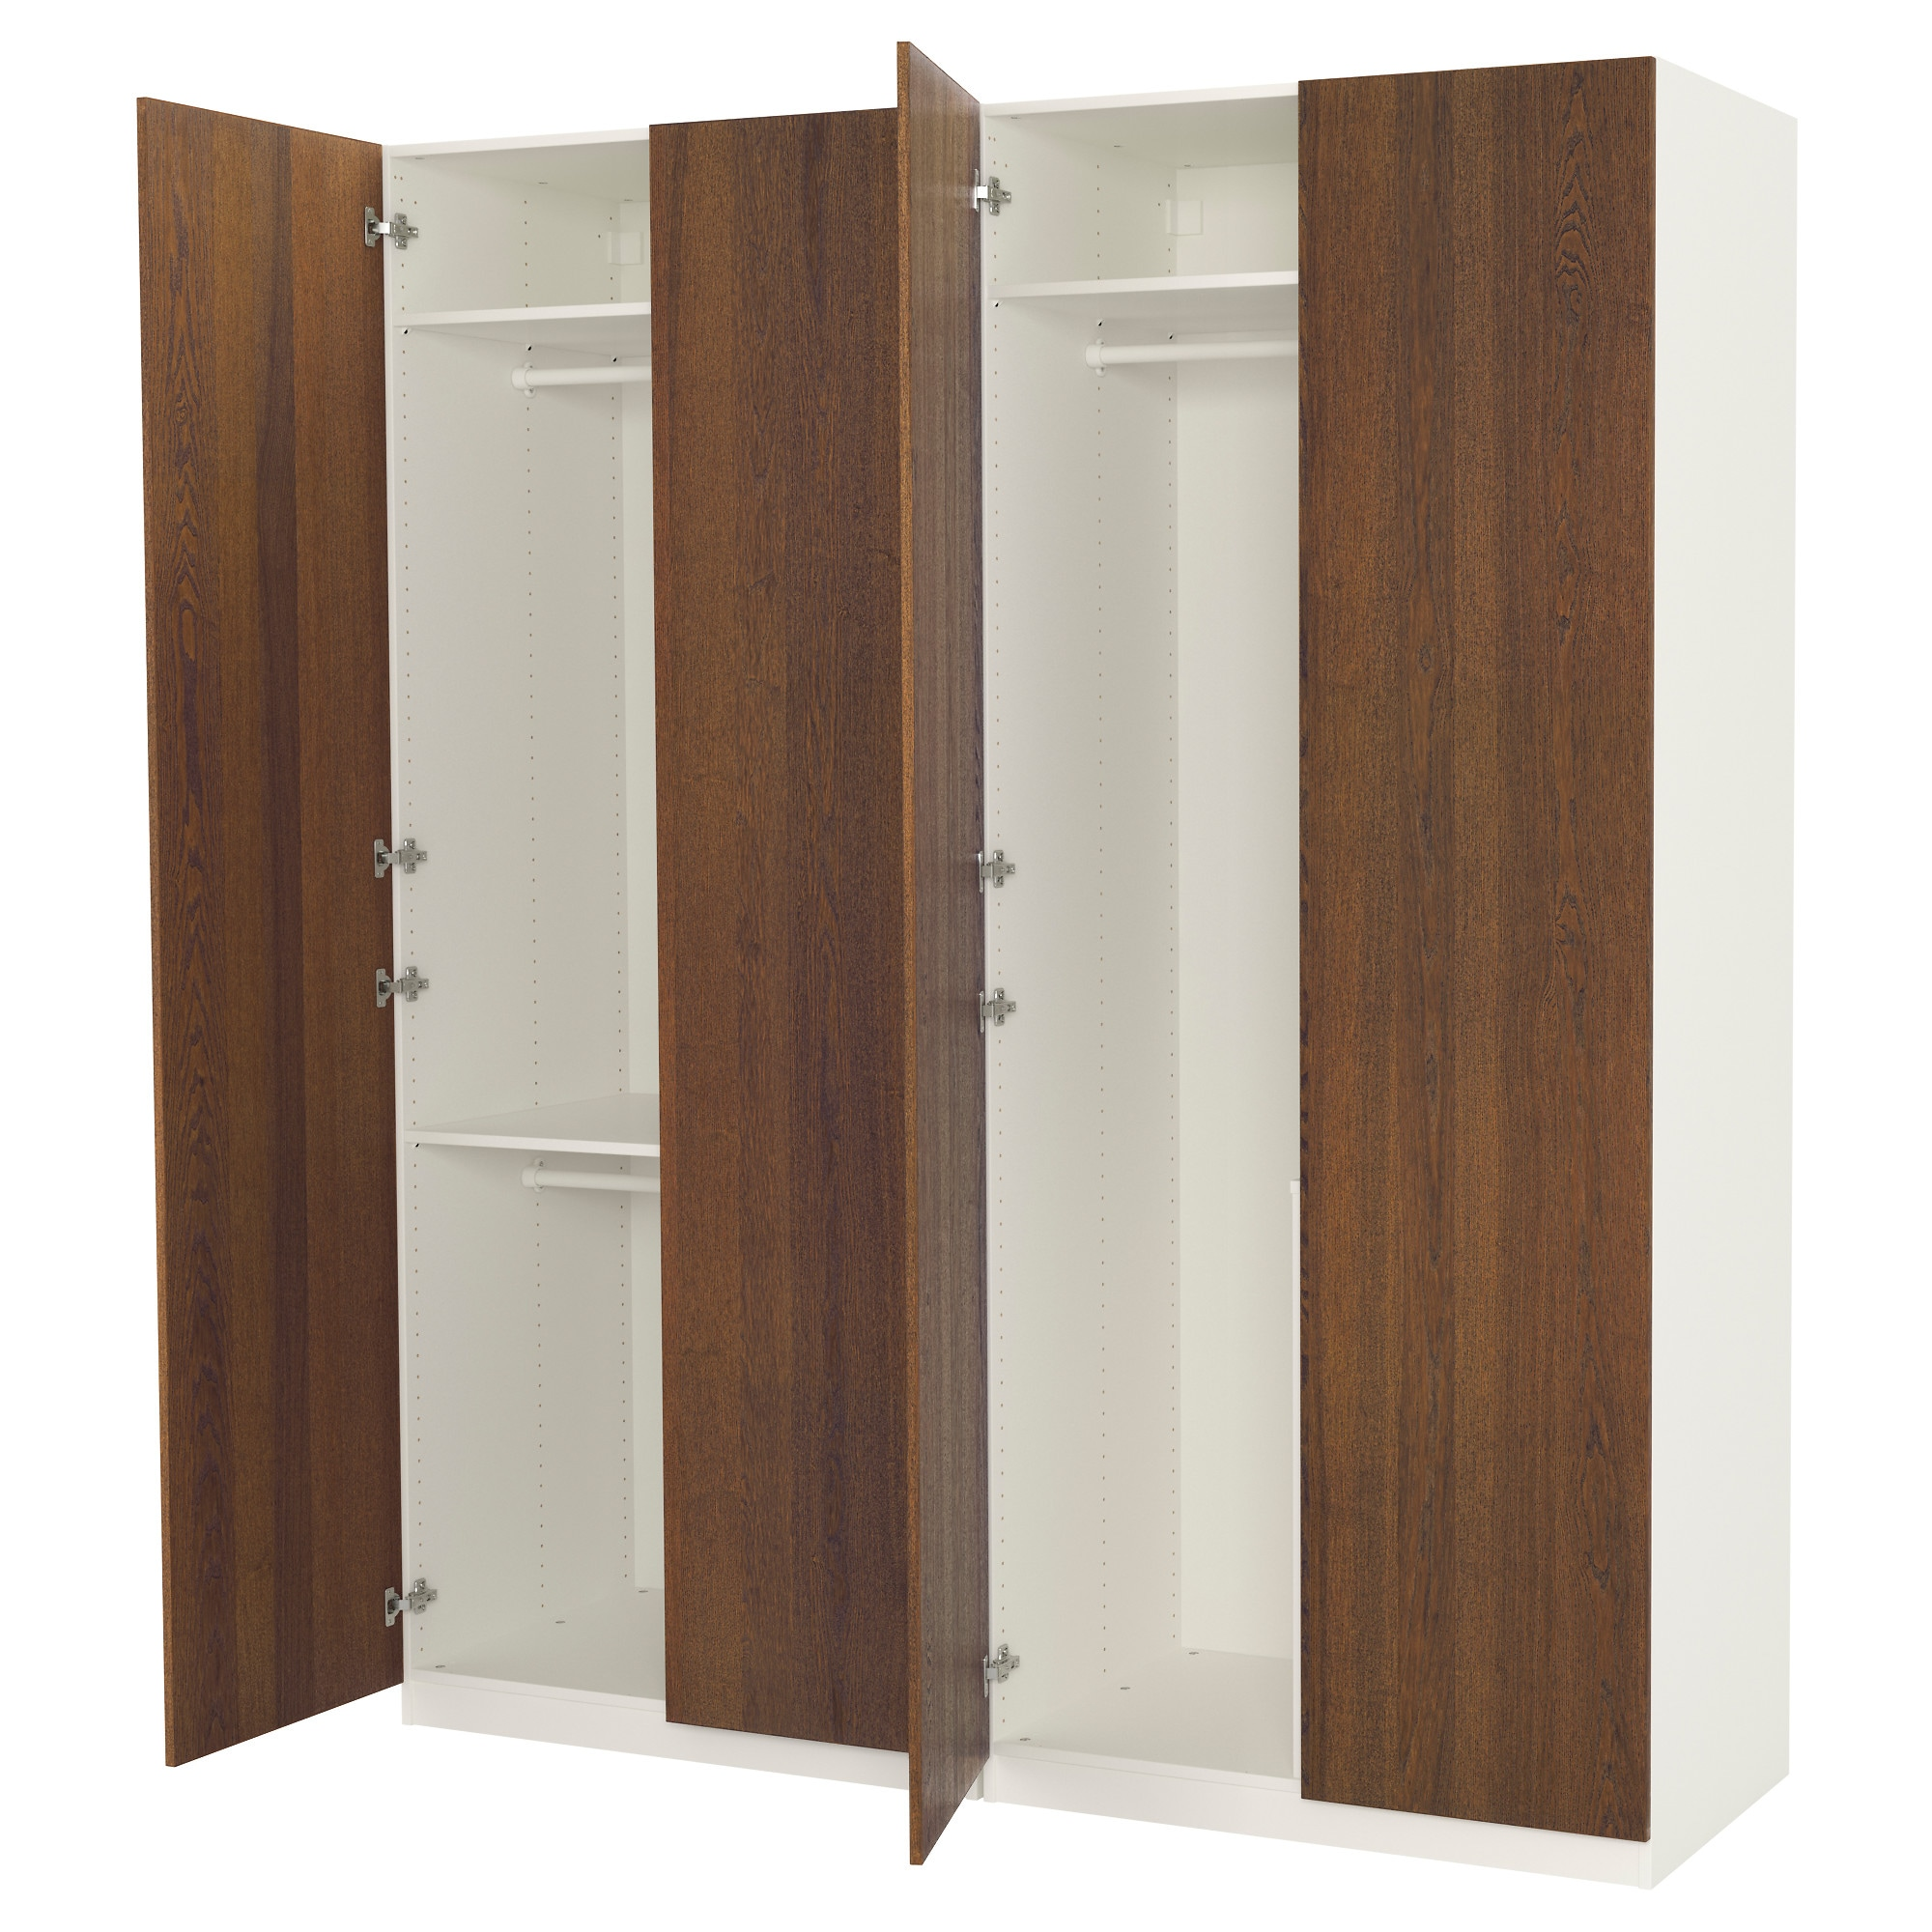 profondeur dressing ikea top armoire avec deux portes euros l x p x with profondeur dressing. Black Bedroom Furniture Sets. Home Design Ideas